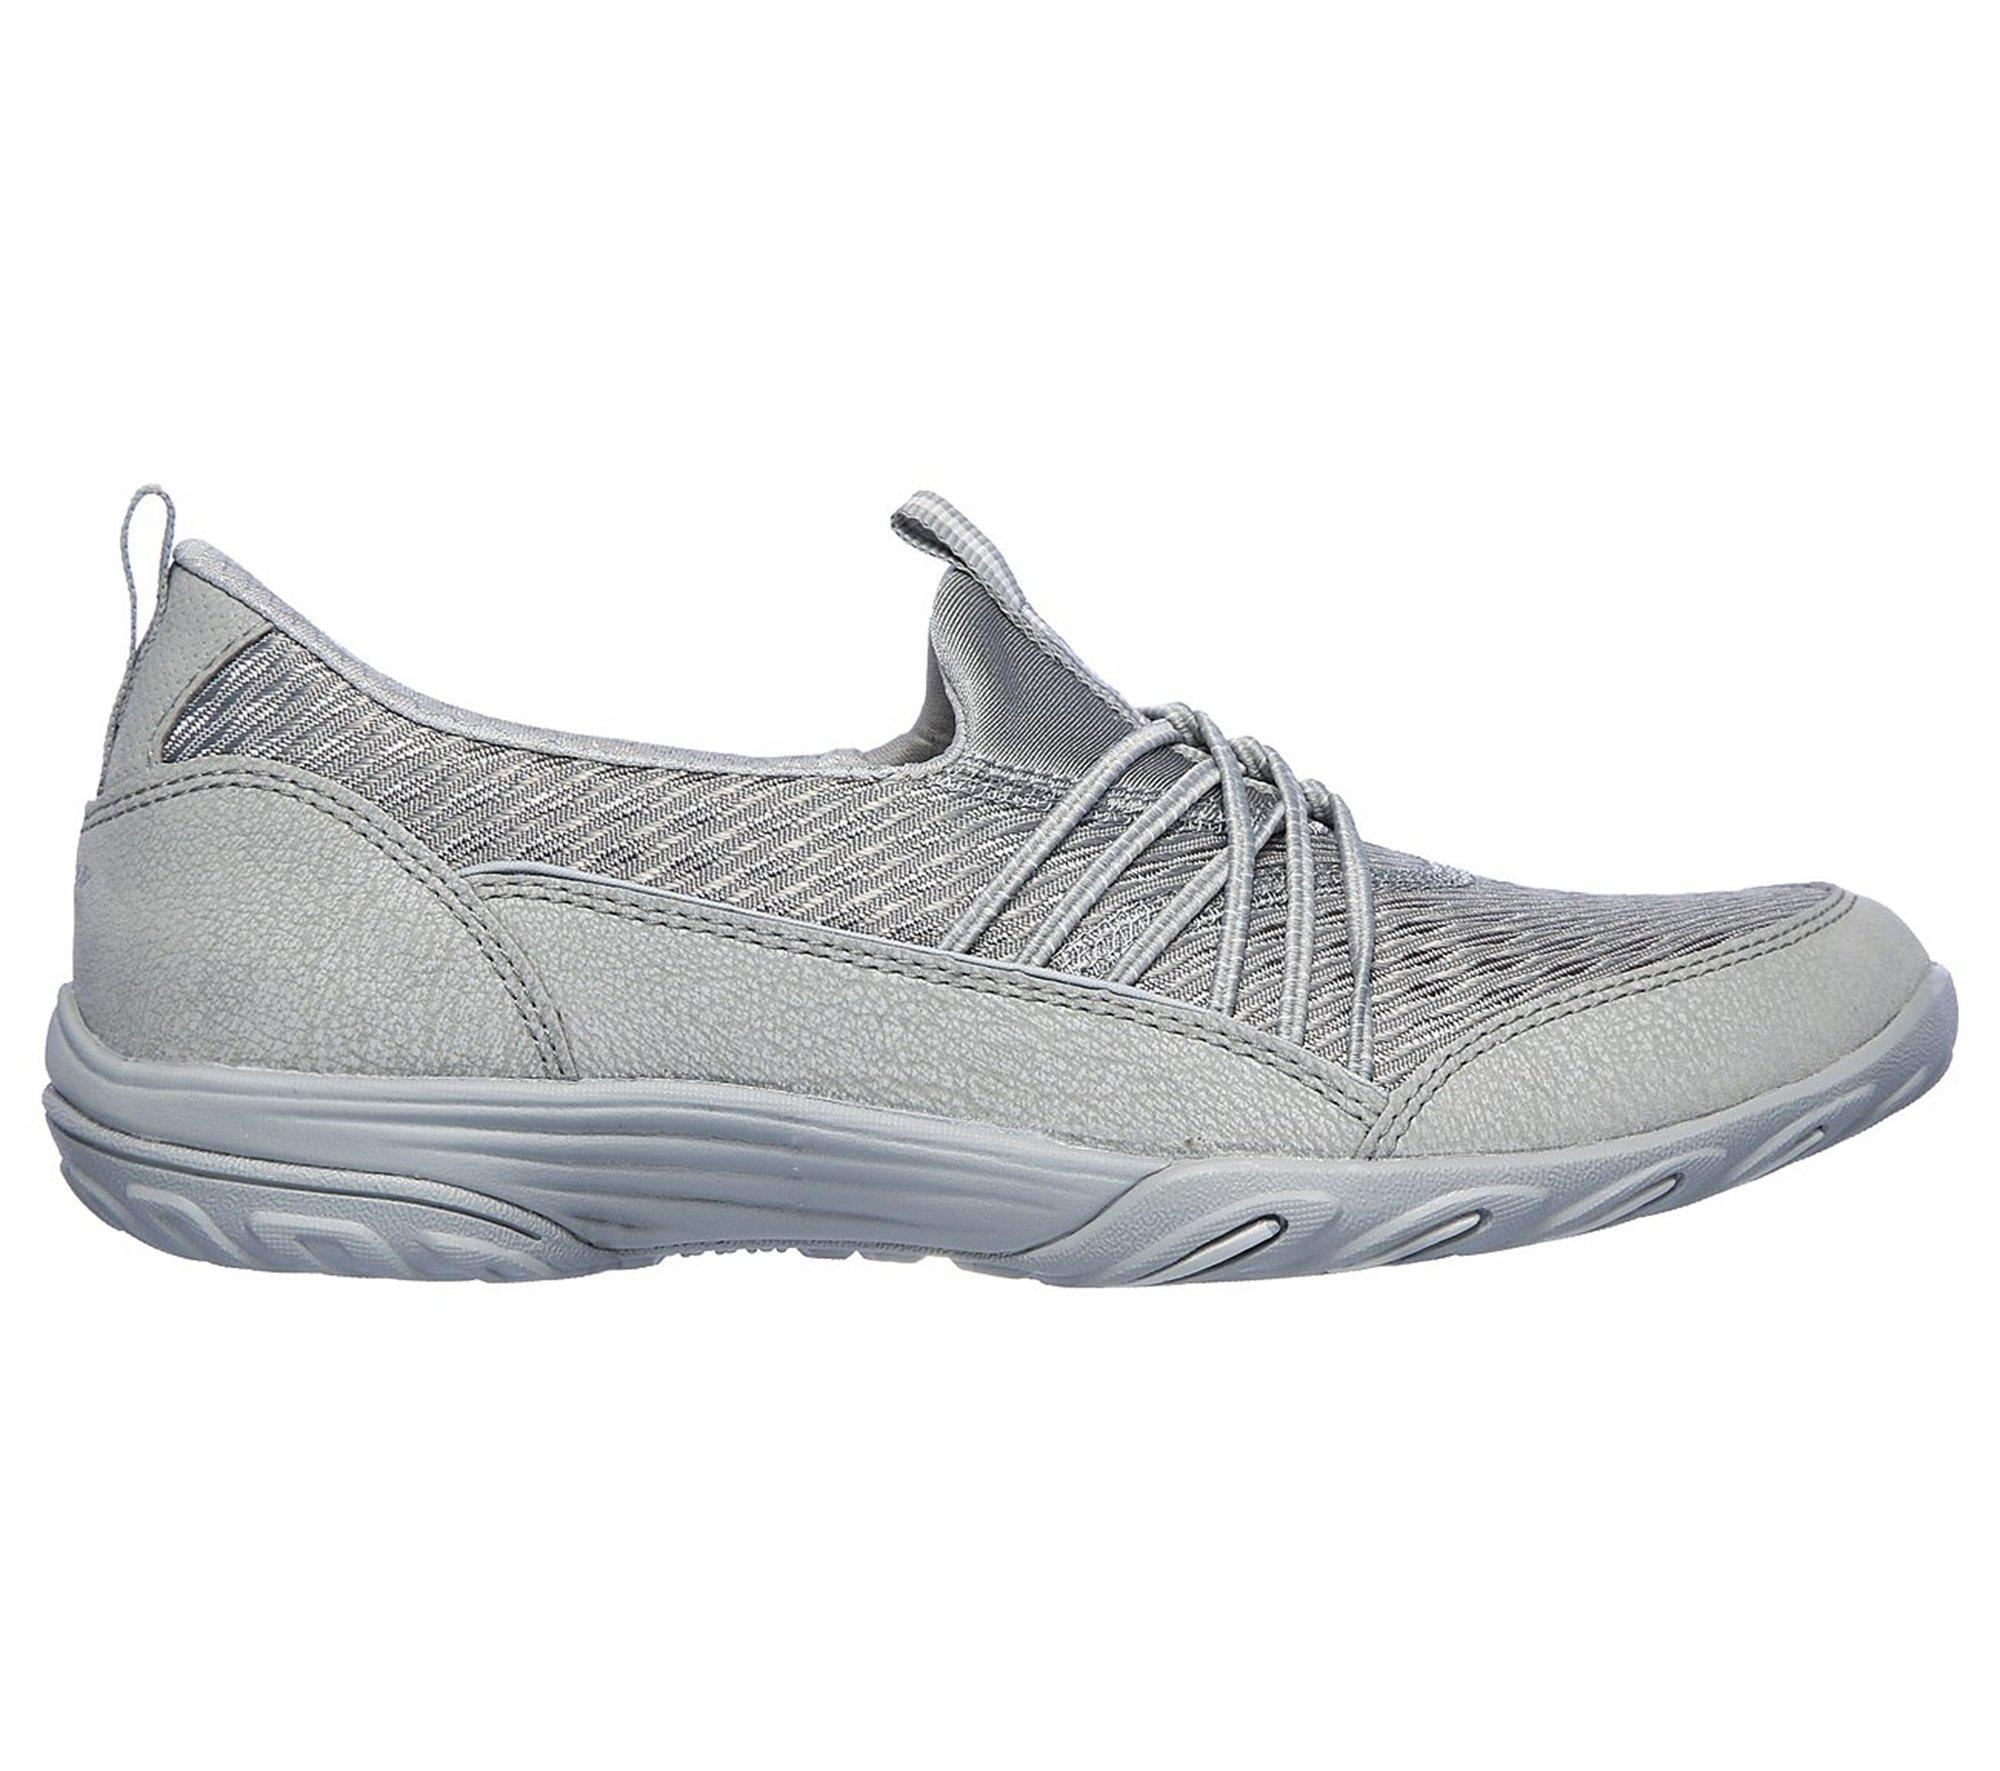 9ca38c7afde Lyst - Skechers Empress - Wide Awake in Gray